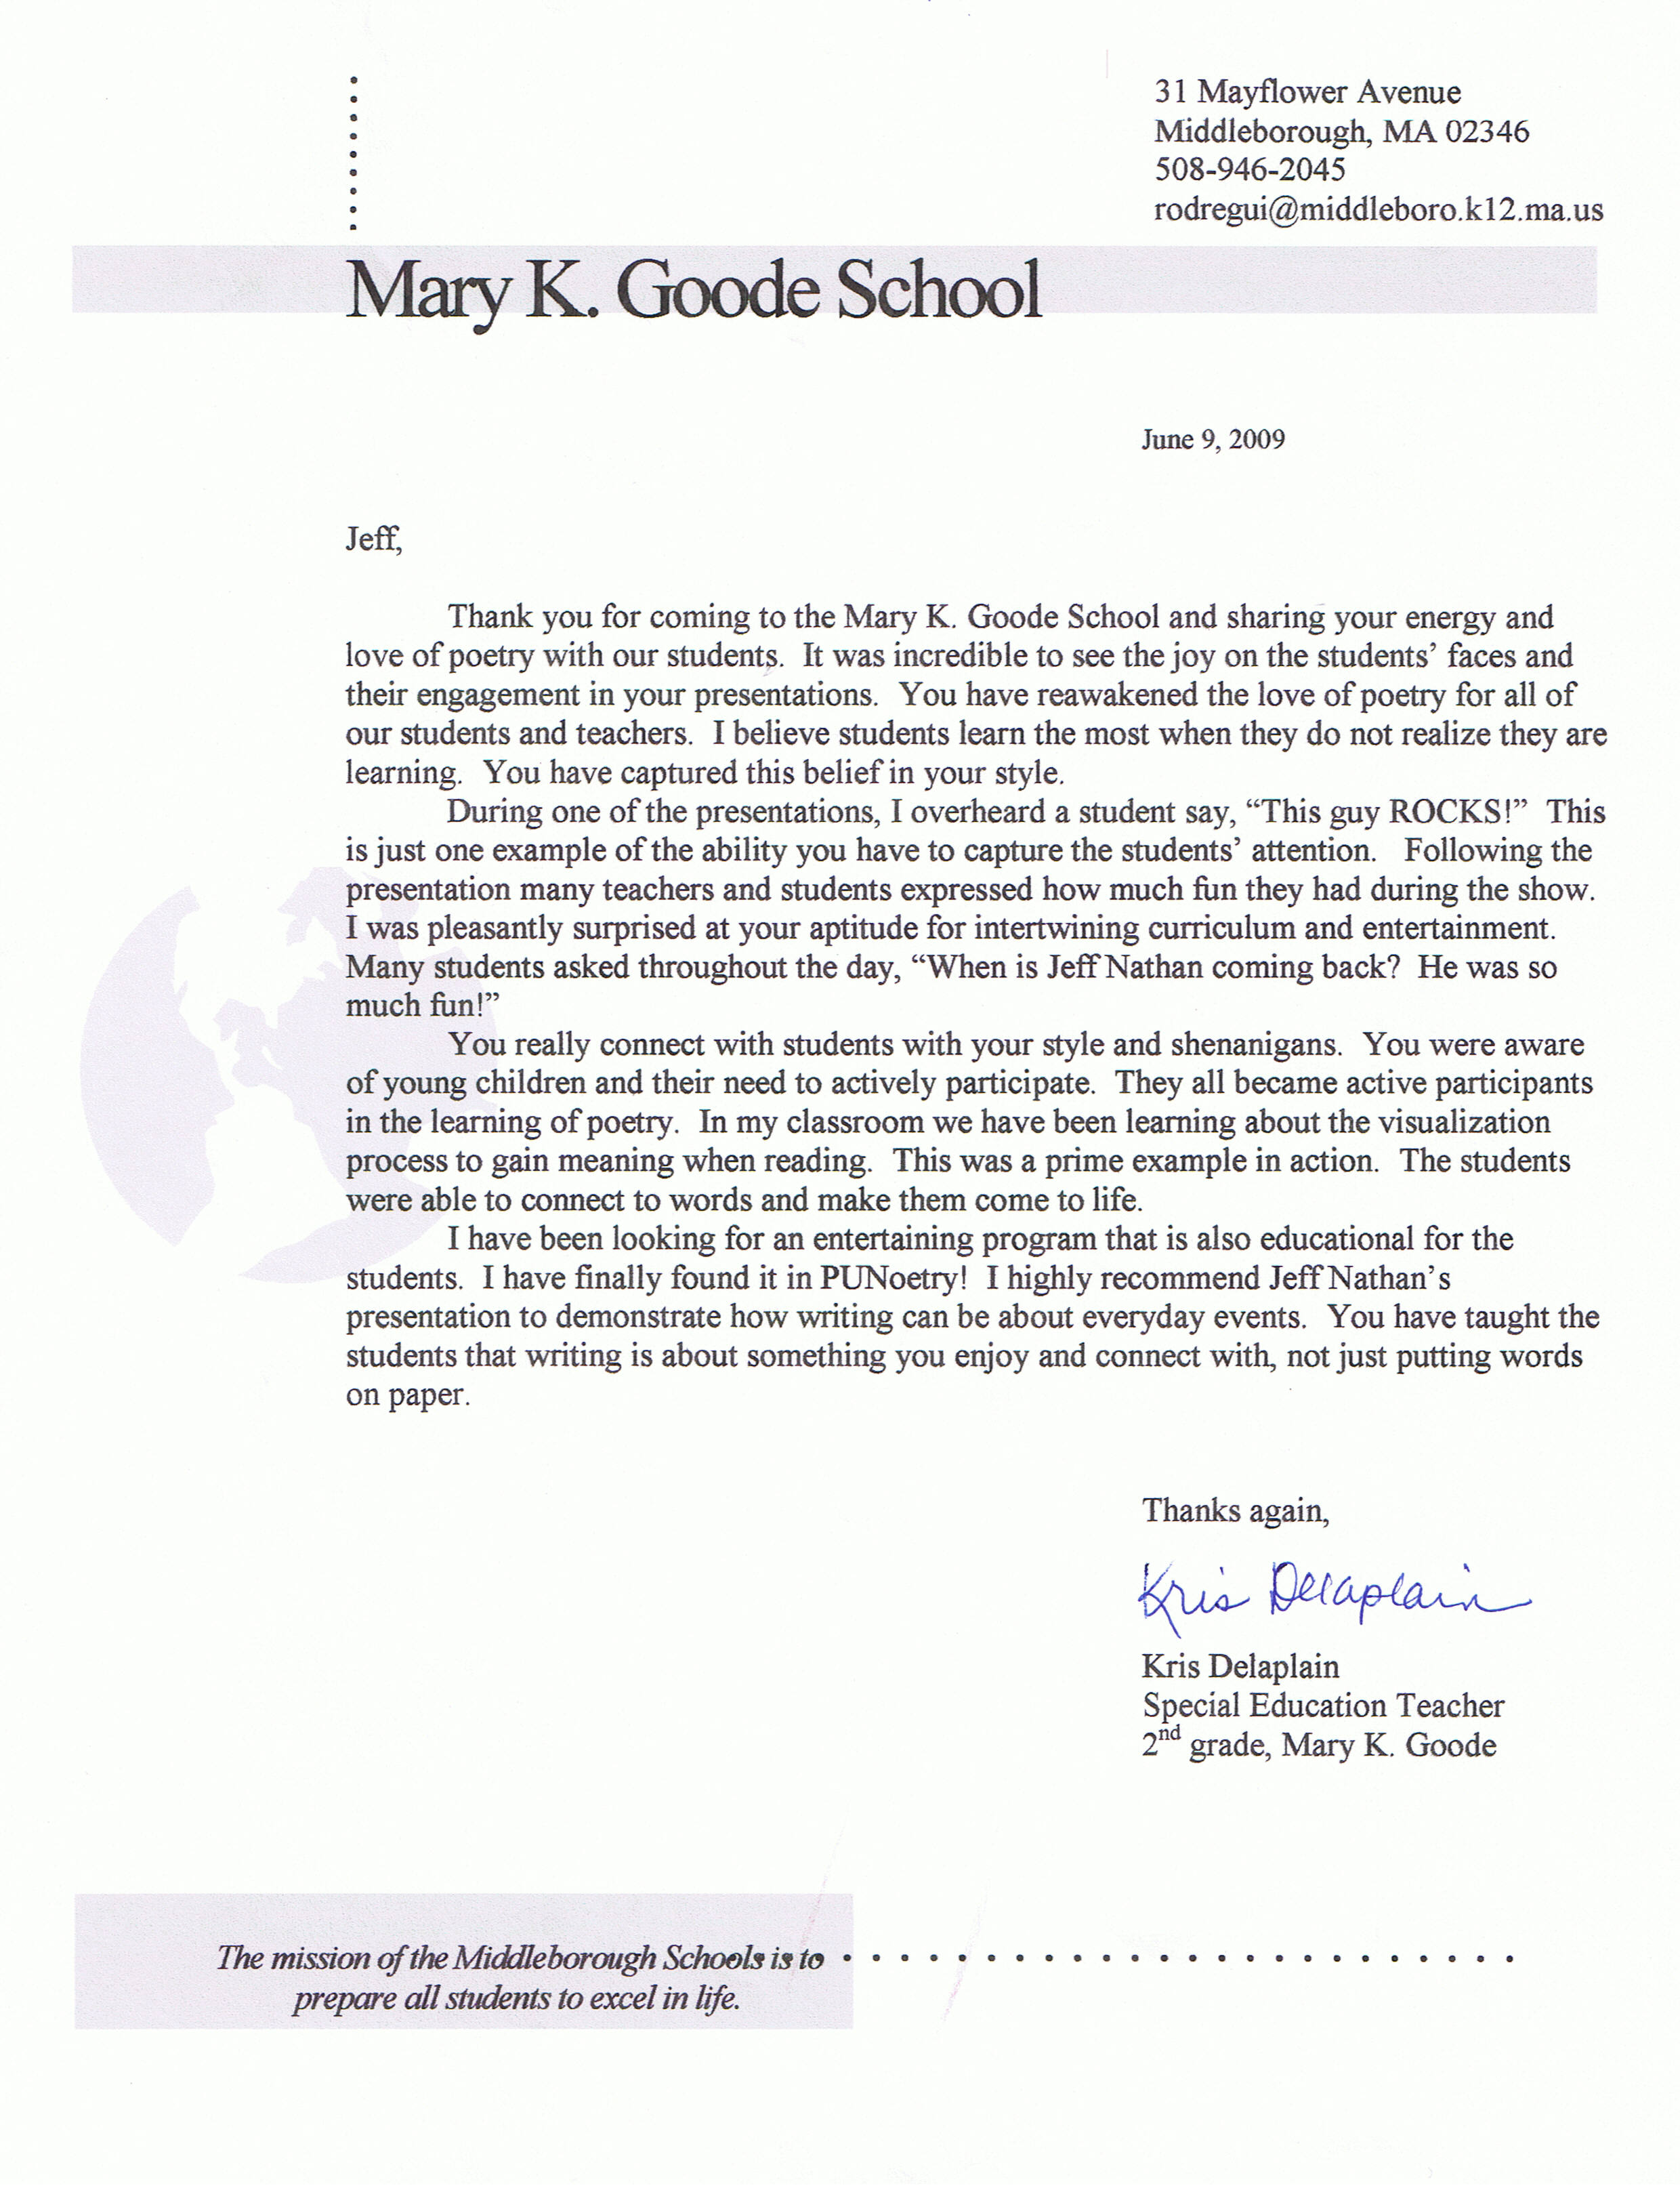 Sample cover letters for math teaching mersnoforum sample cover letters for math teaching altavistaventures Images